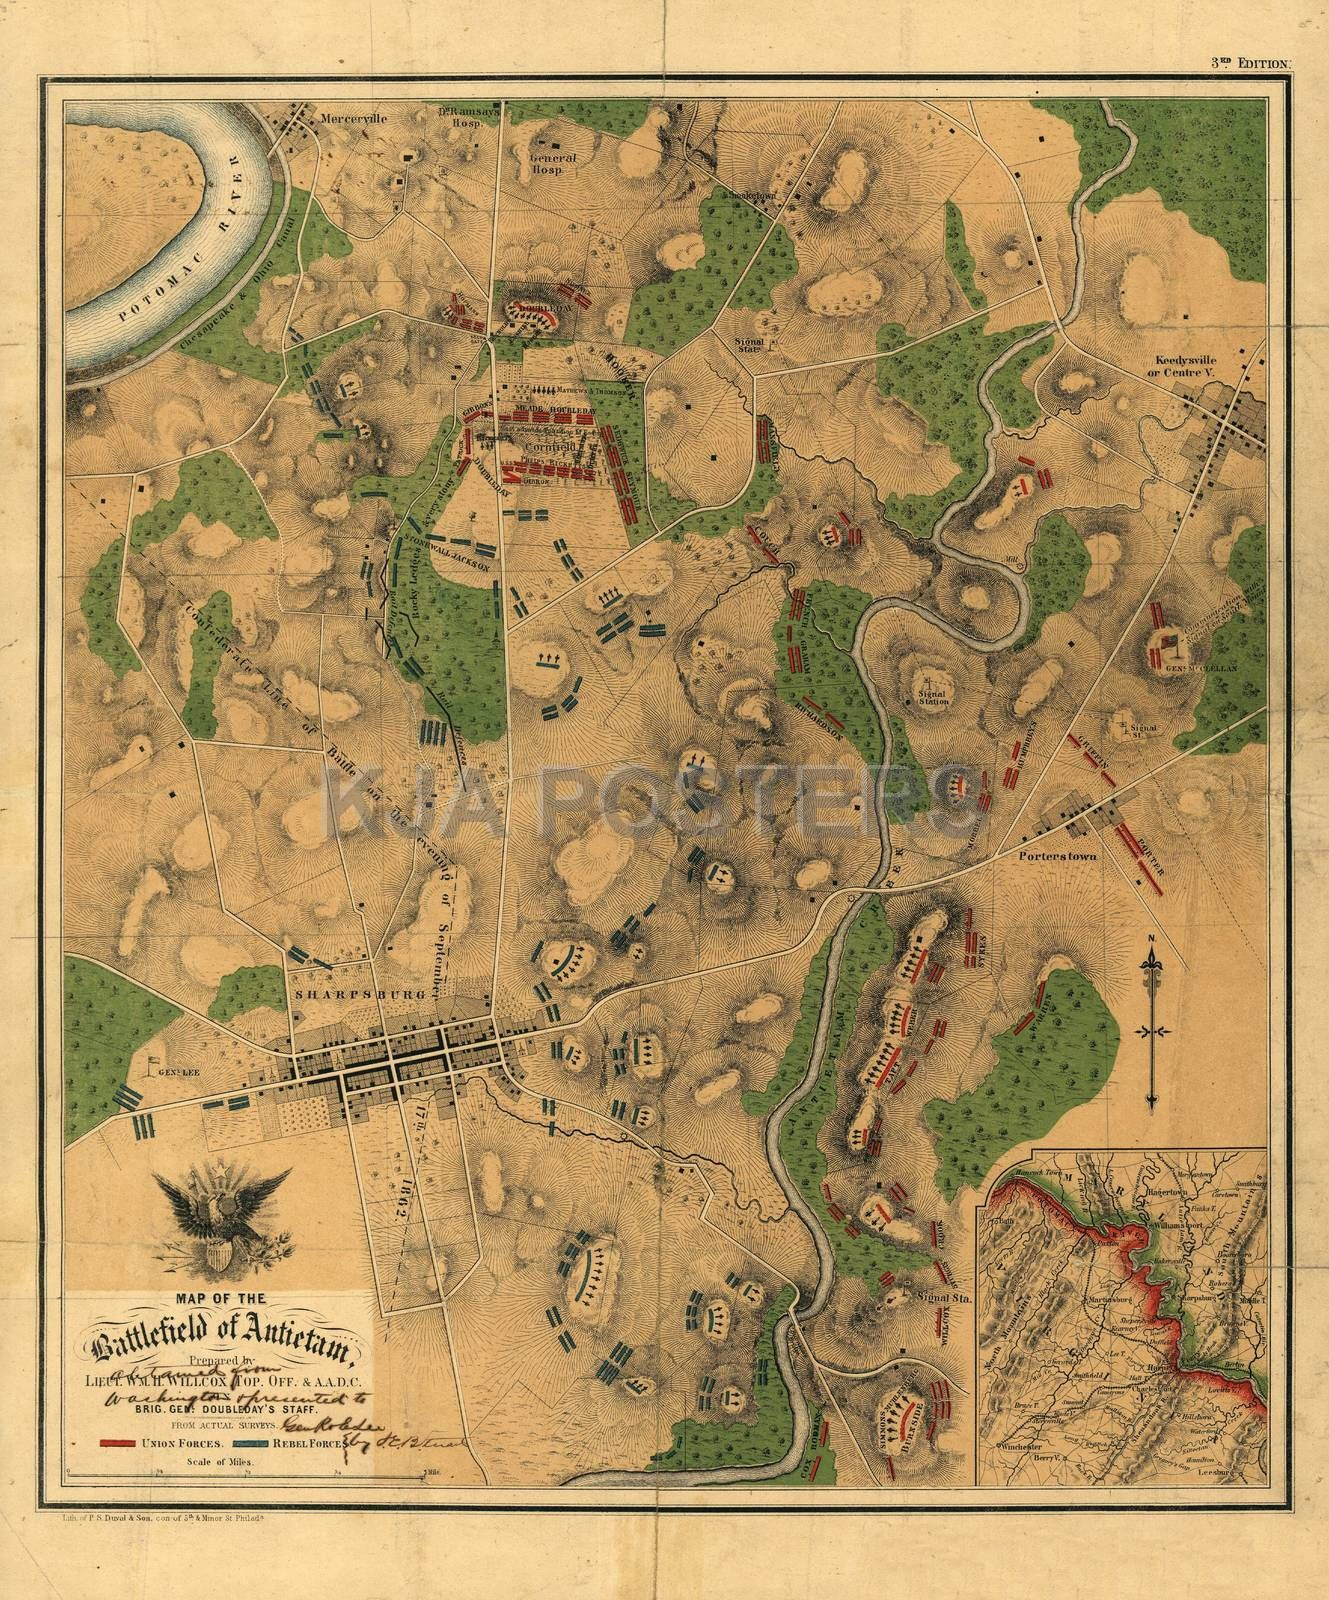 civil war map of the battlefield of antietam 1862